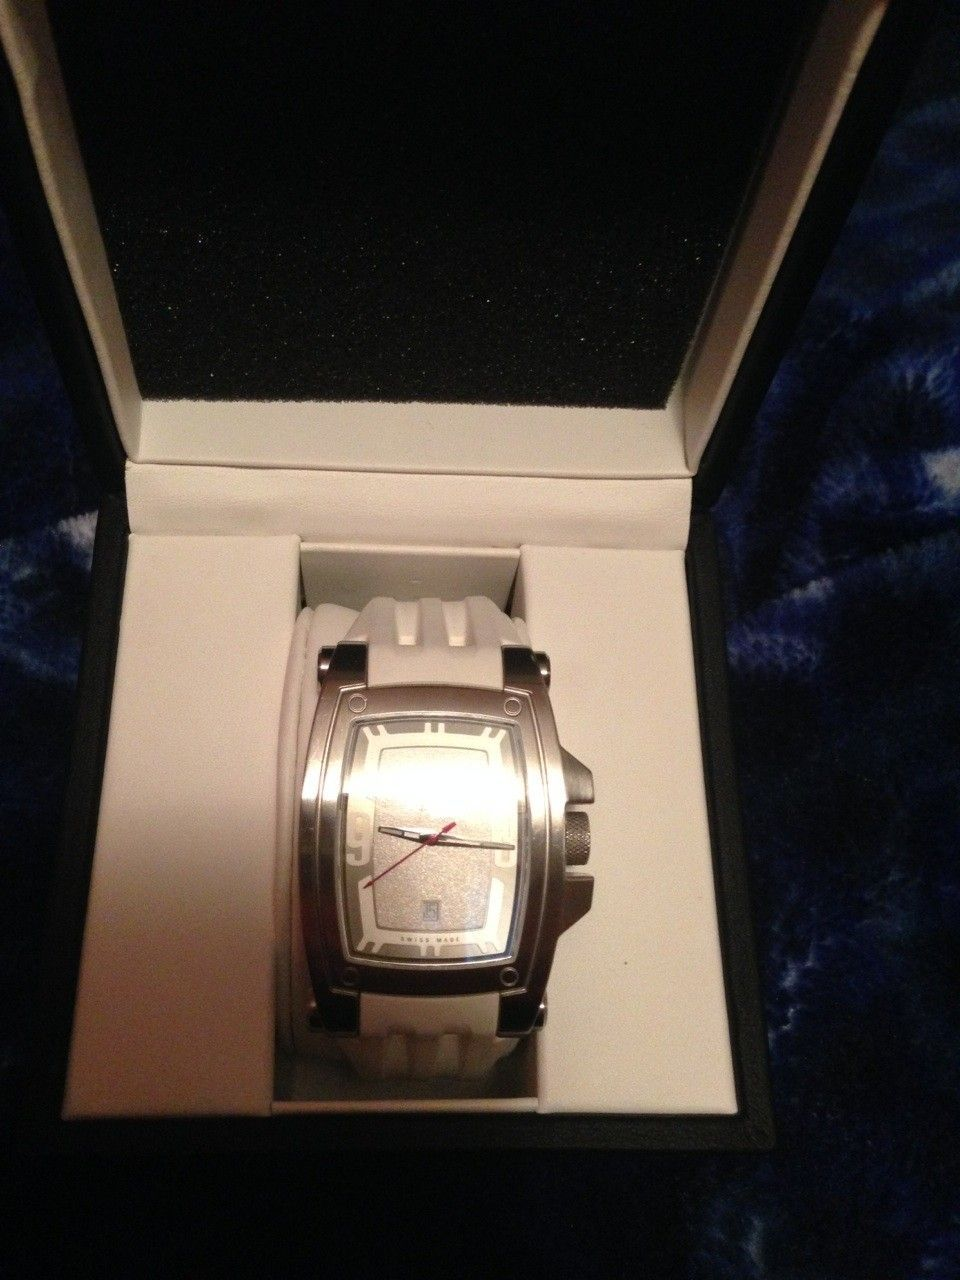 /WTS White Warrant Watch - rmwu.jpg